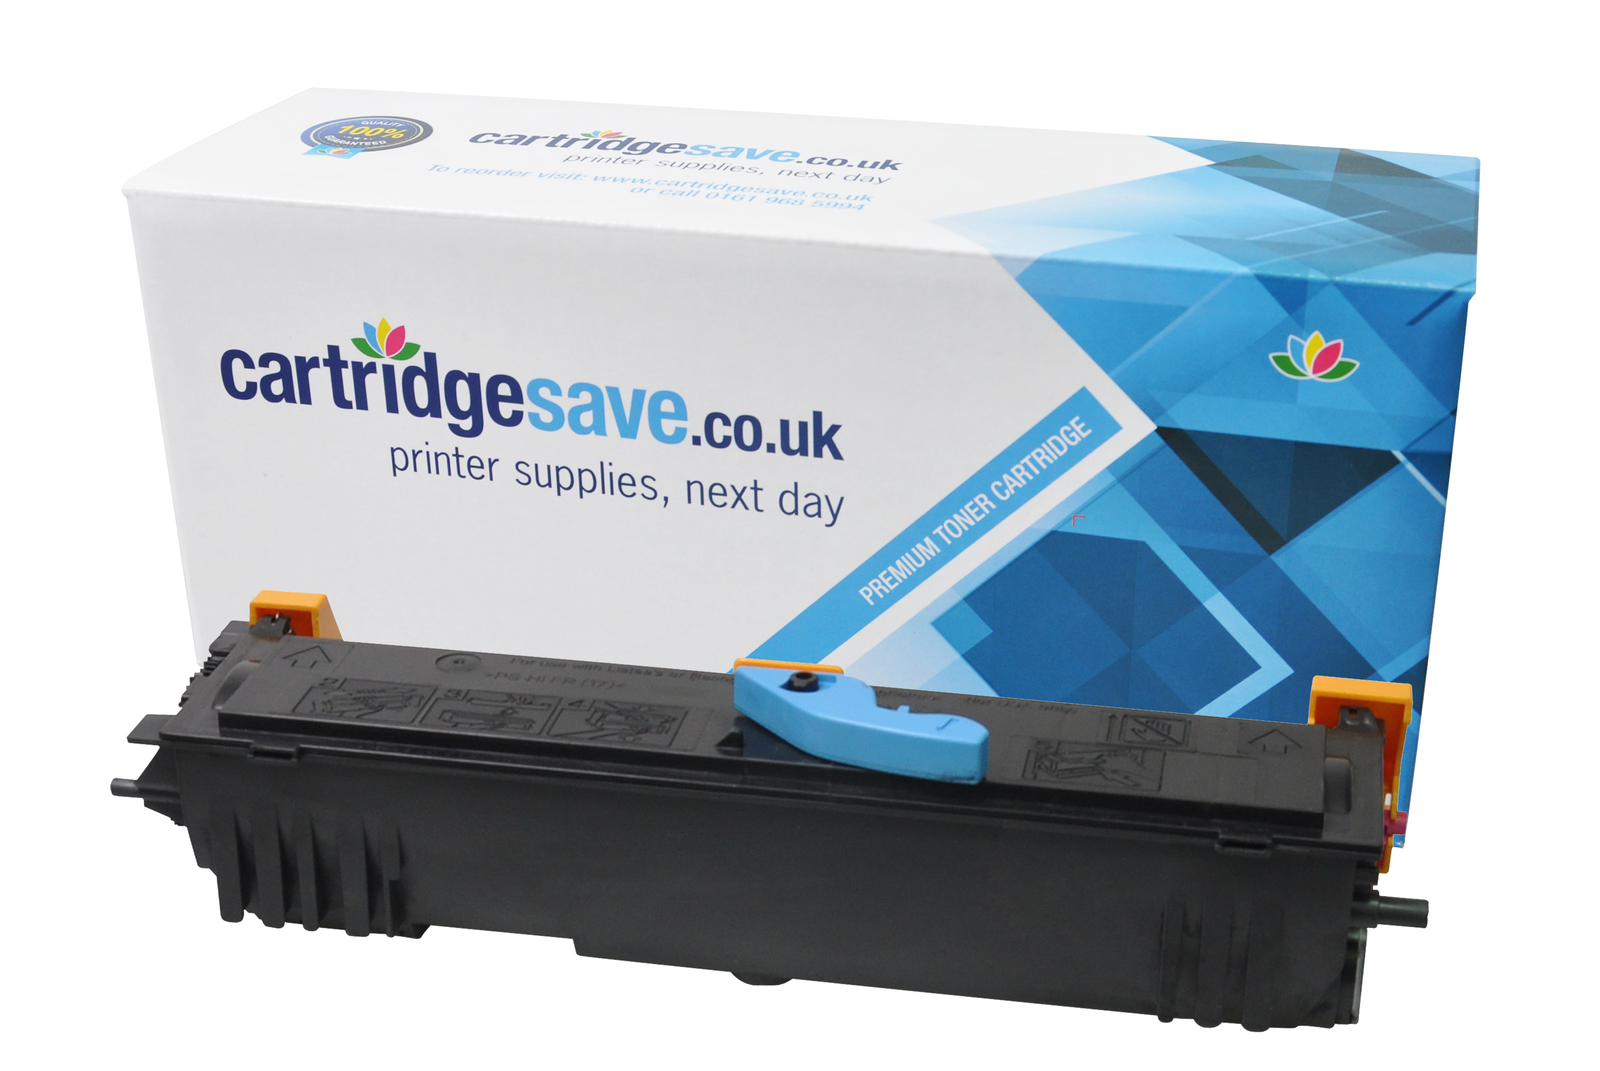 Compatible High Capacity Black Epson S050166 Toner Cartridge - (Replaces Epson S050166)